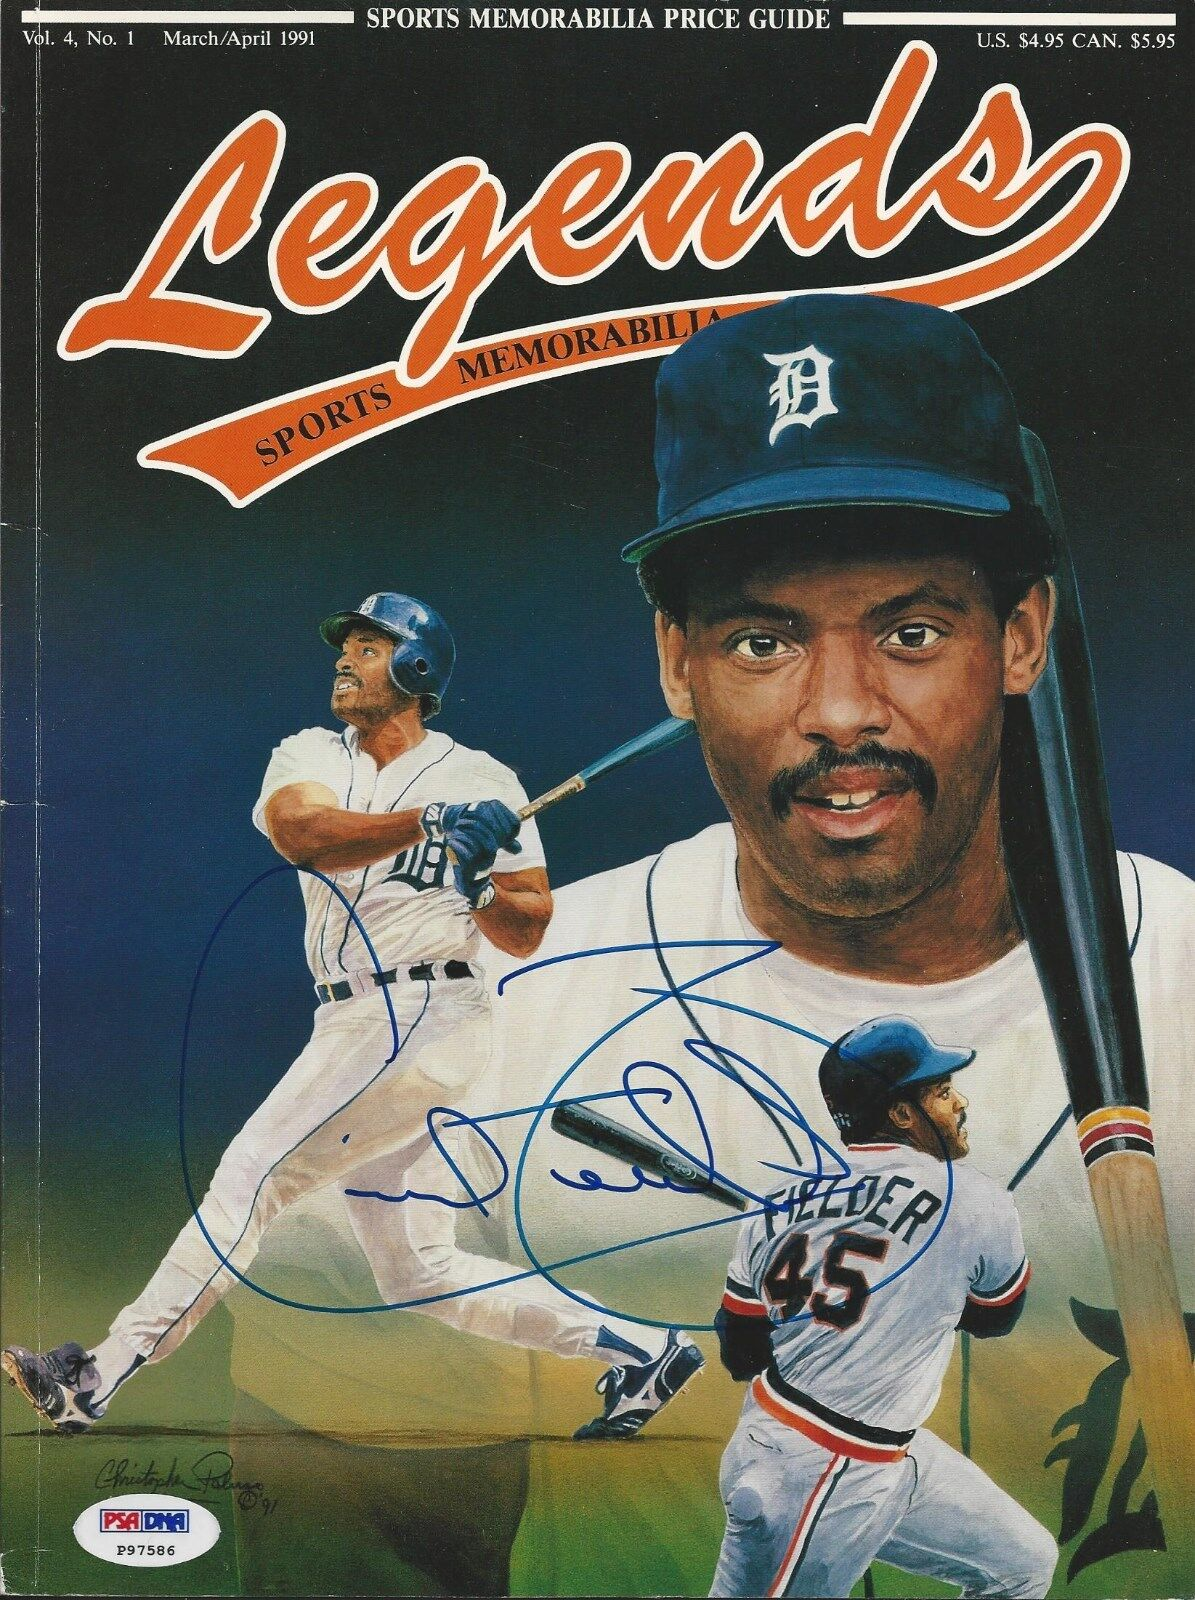 Cecil Fielder Signed Legends Magazine PSA/DNA COA # P97586